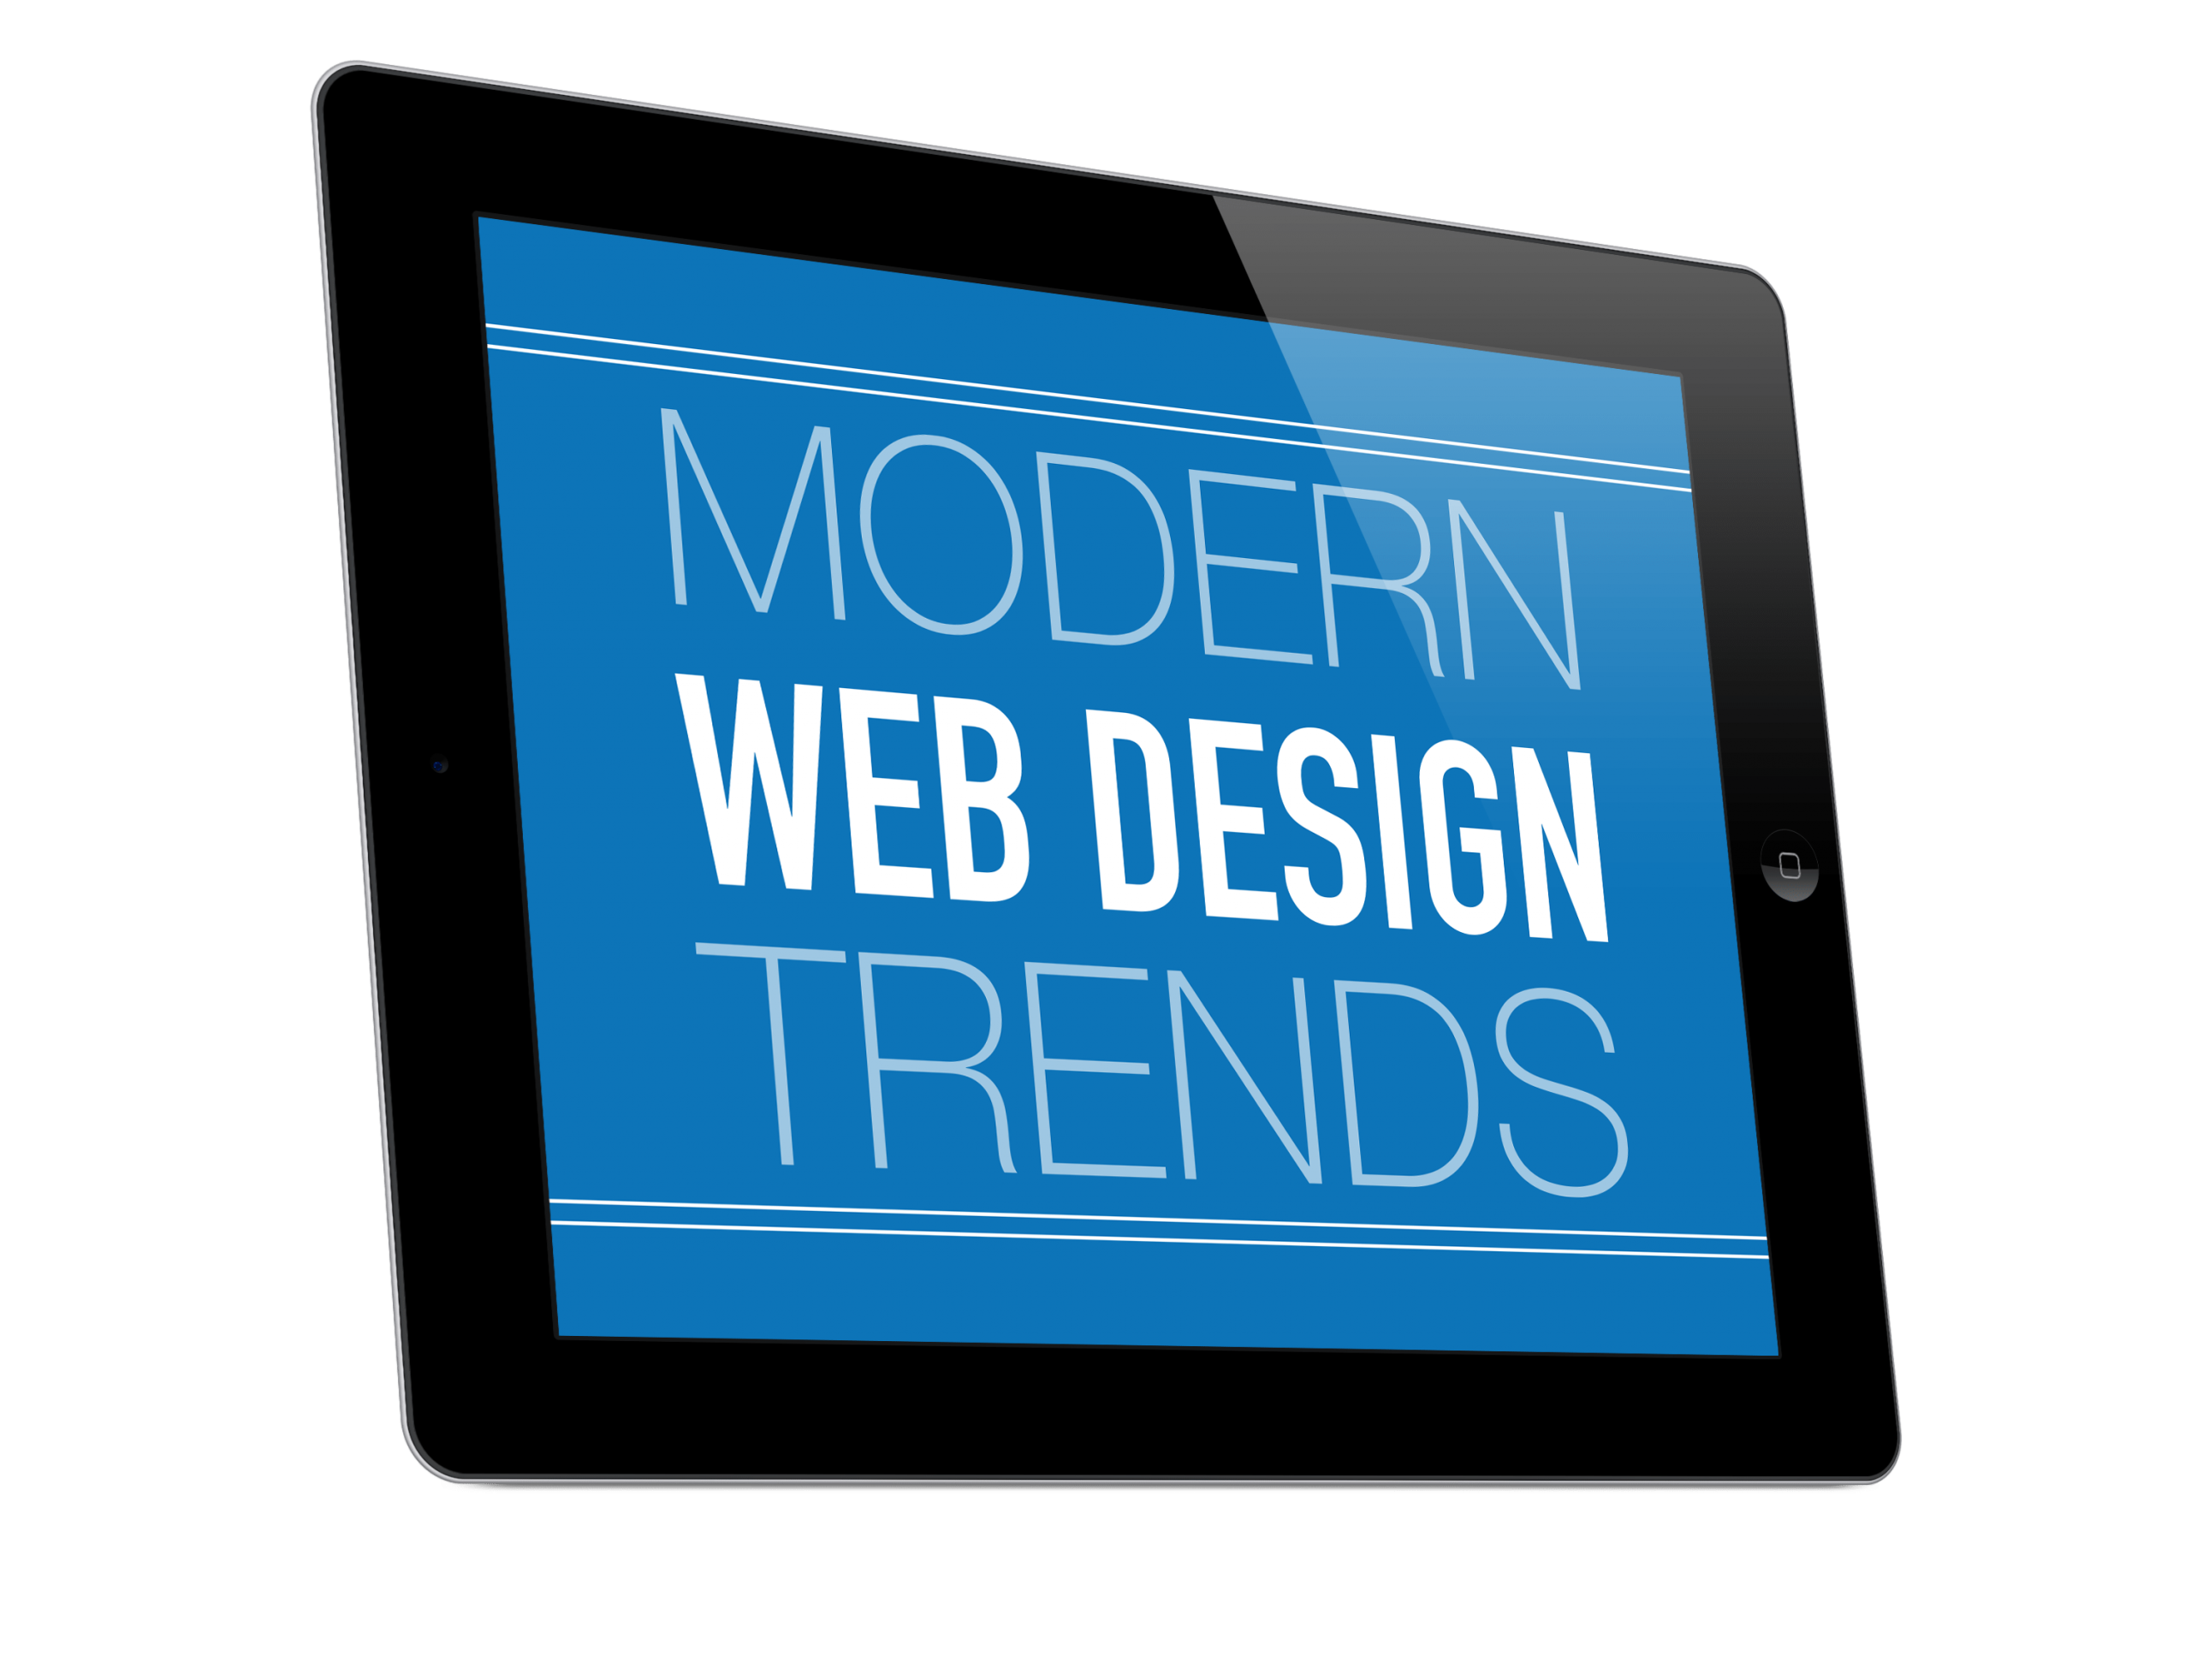 Modern Web Design Trends